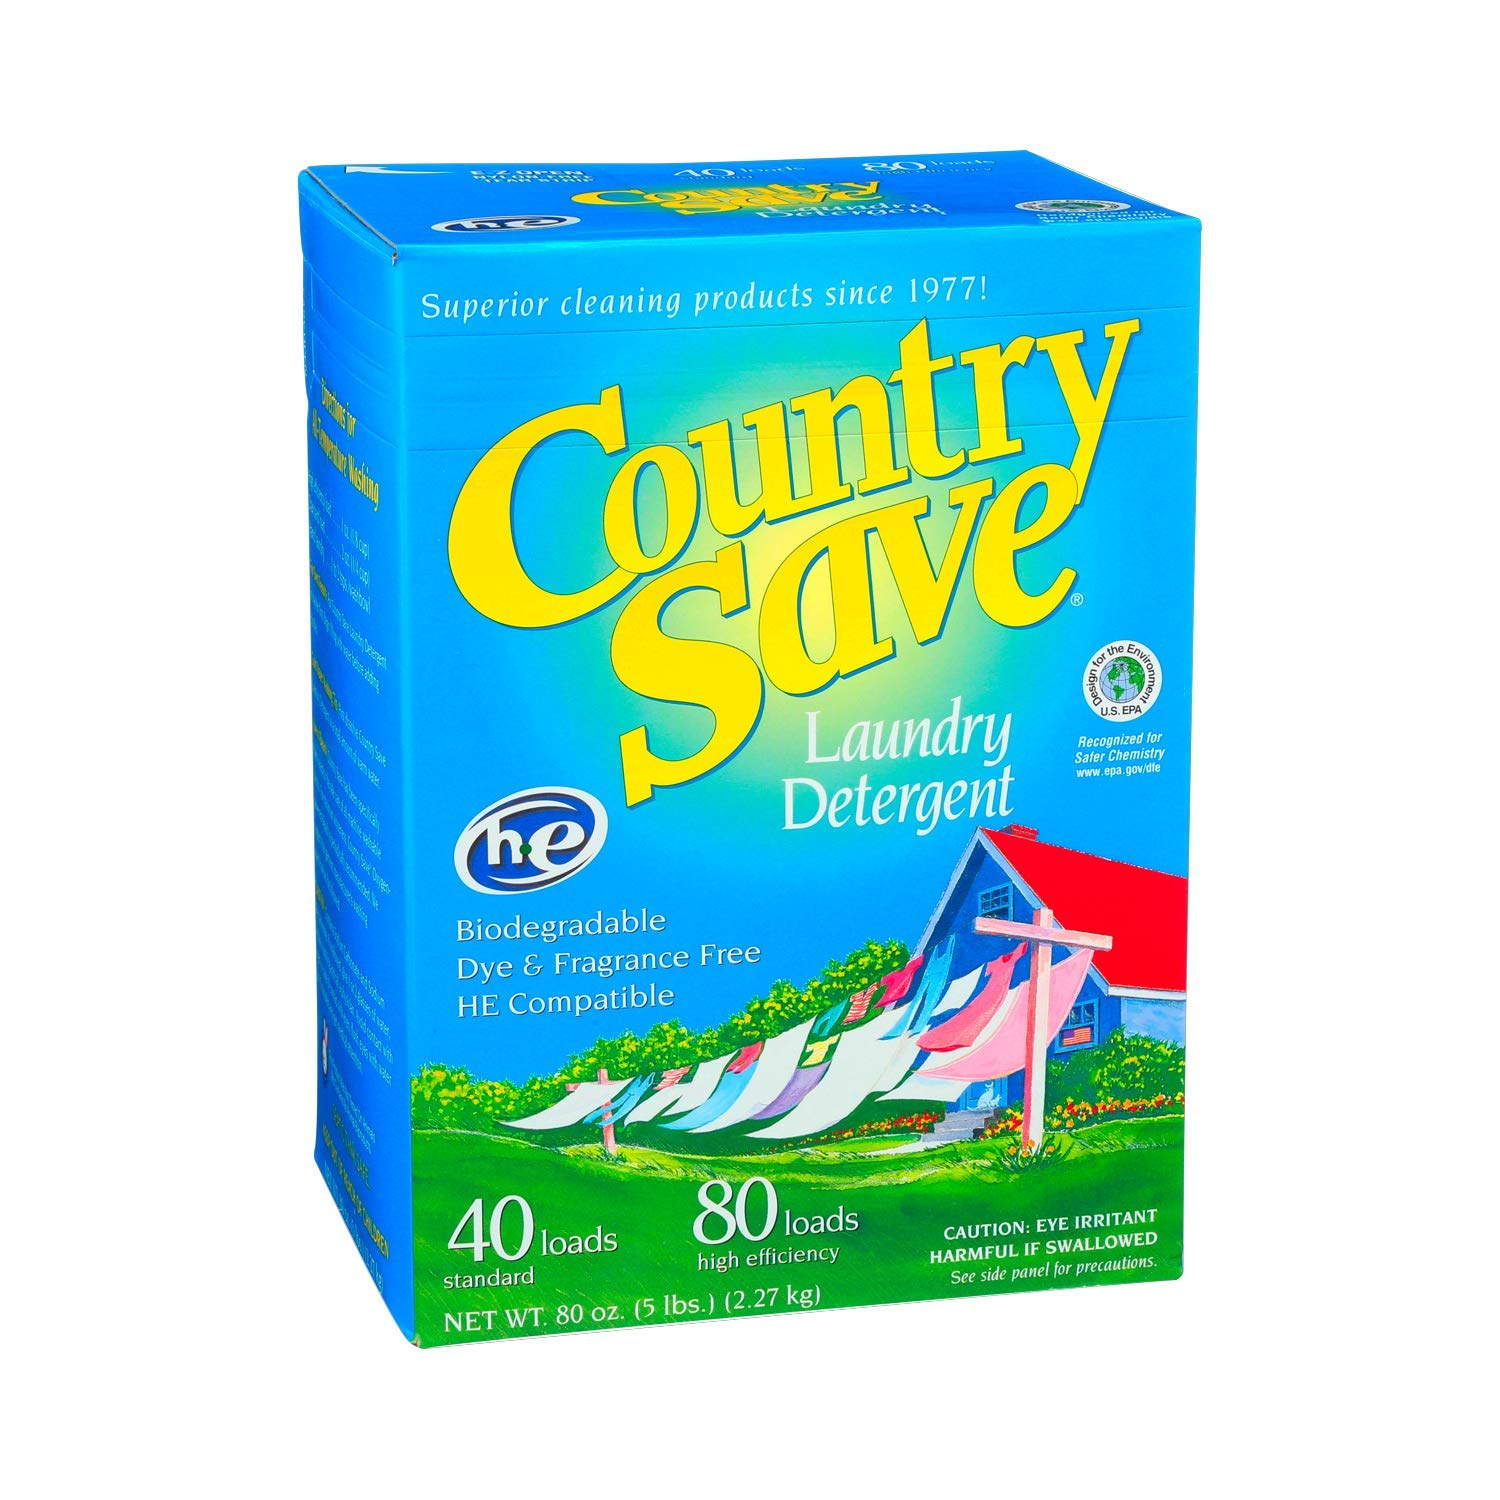 Country Save Biodegradable Non Toxic Fragrance Free Laundry Detergent Powder for Cold and Warm Washing in HE and Regular Machines - 5 lb (80 oz) by Country Save